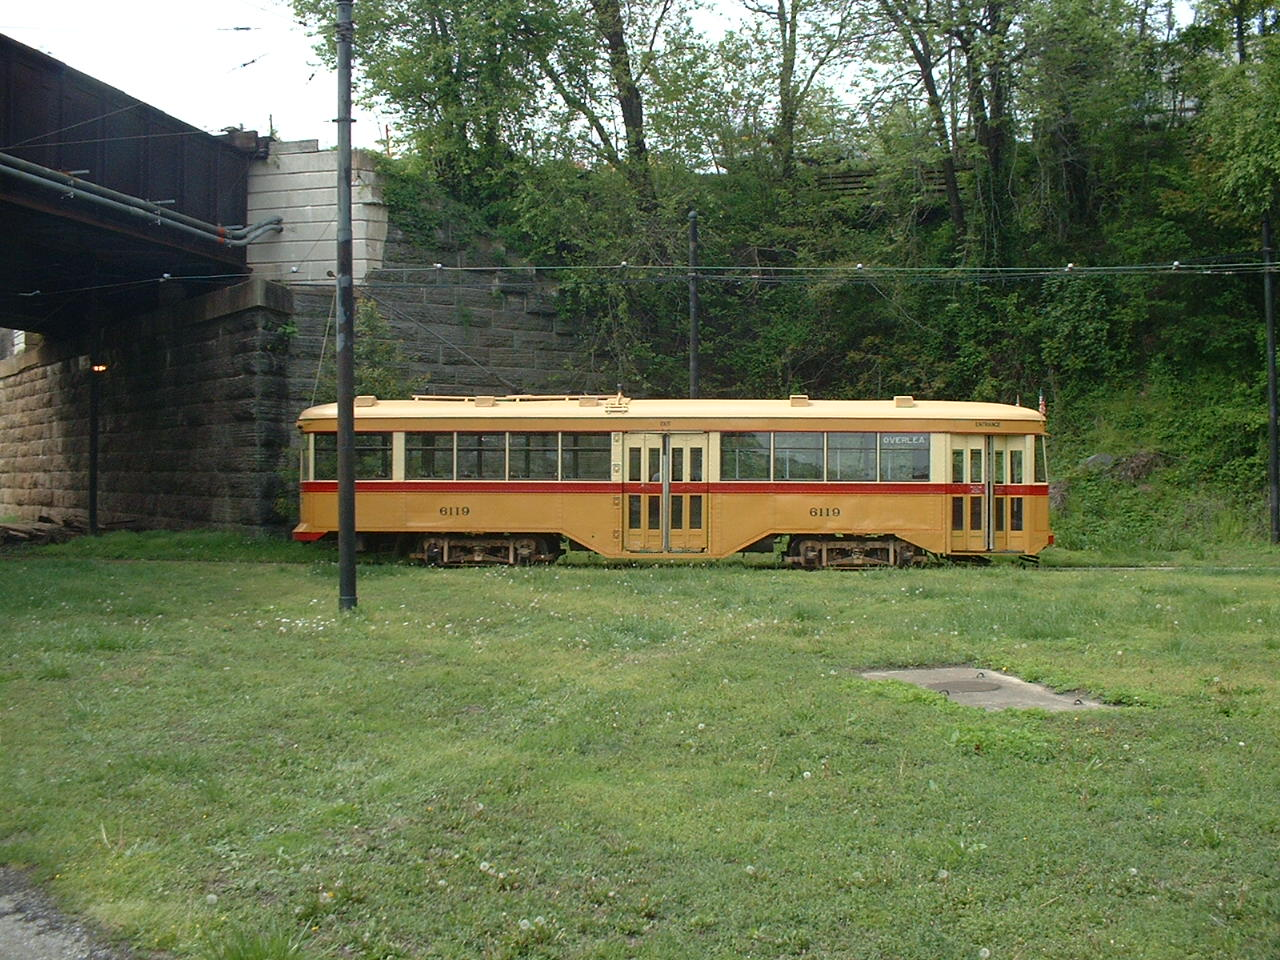 (300k, 1280x960)<br><b>Country:</b> United States<br><b>City:</b> Baltimore, MD<br><b>System:</b> Baltimore Streetcar Museum <br><b>Car:</b>  6119 <br><b>Photo by:</b> Dan Lawrence<br><b>Date:</b> 4/27/2002<br><b>Notes:</b> BSM 6119 at North Avenue Loop<br><b>Viewed (this week/total):</b> 3 / 4270